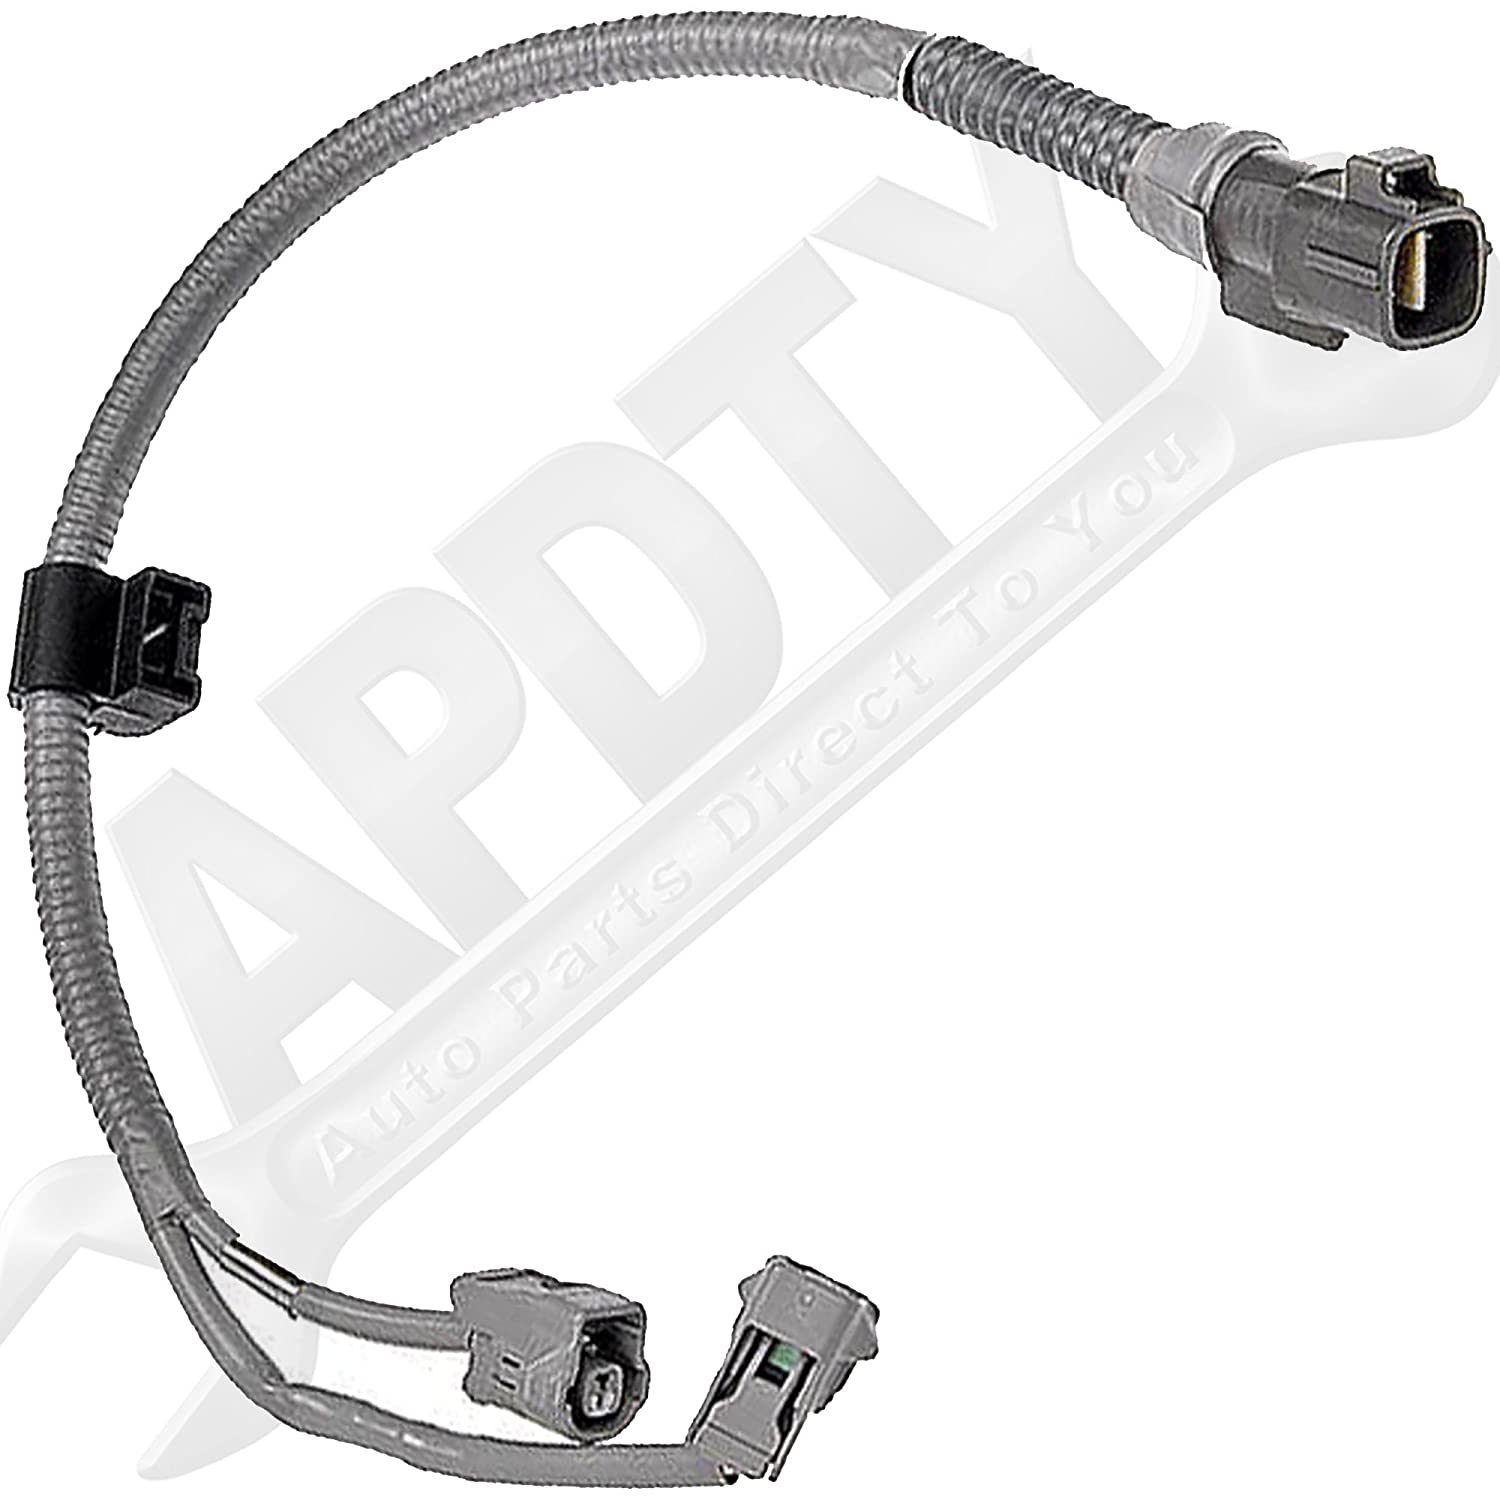 71uH8 9KmtL._SL1500_ amazon com apdty 028143 engine knock sensor wiring harness Knock Sensor Wiring Harness at bayanpartner.co